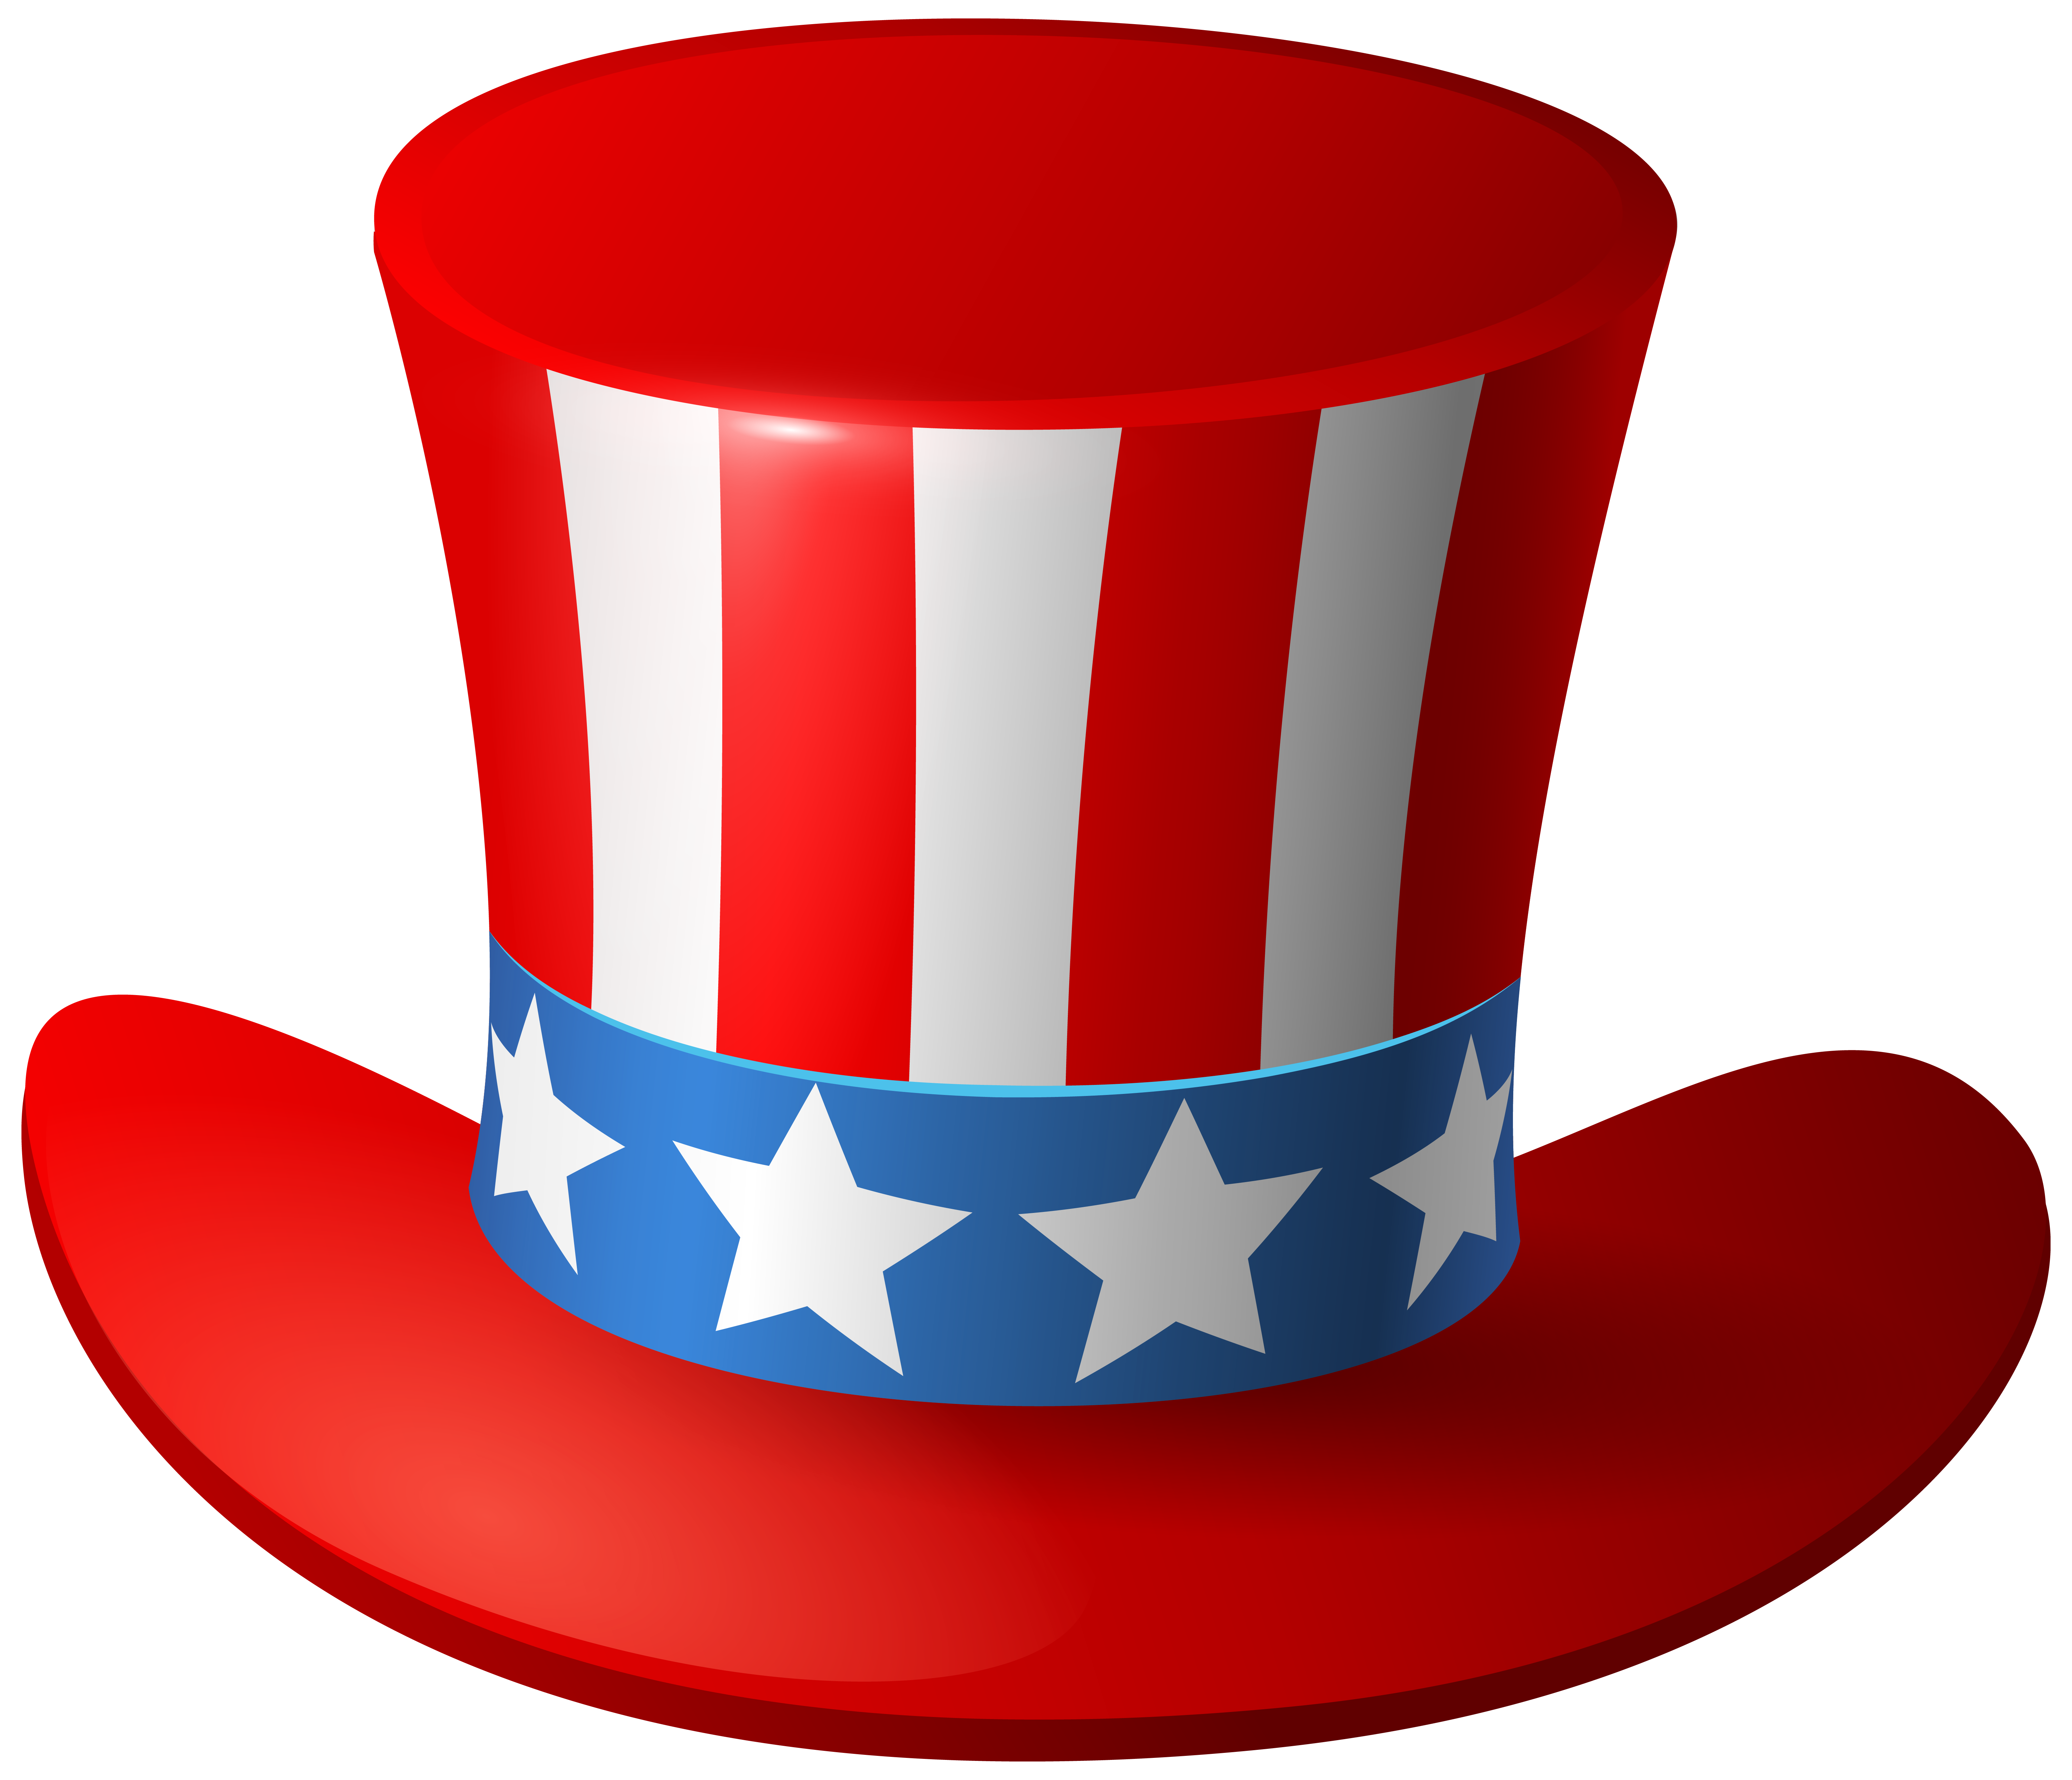 Uncle sam usa hat. Hats clipart 4th july